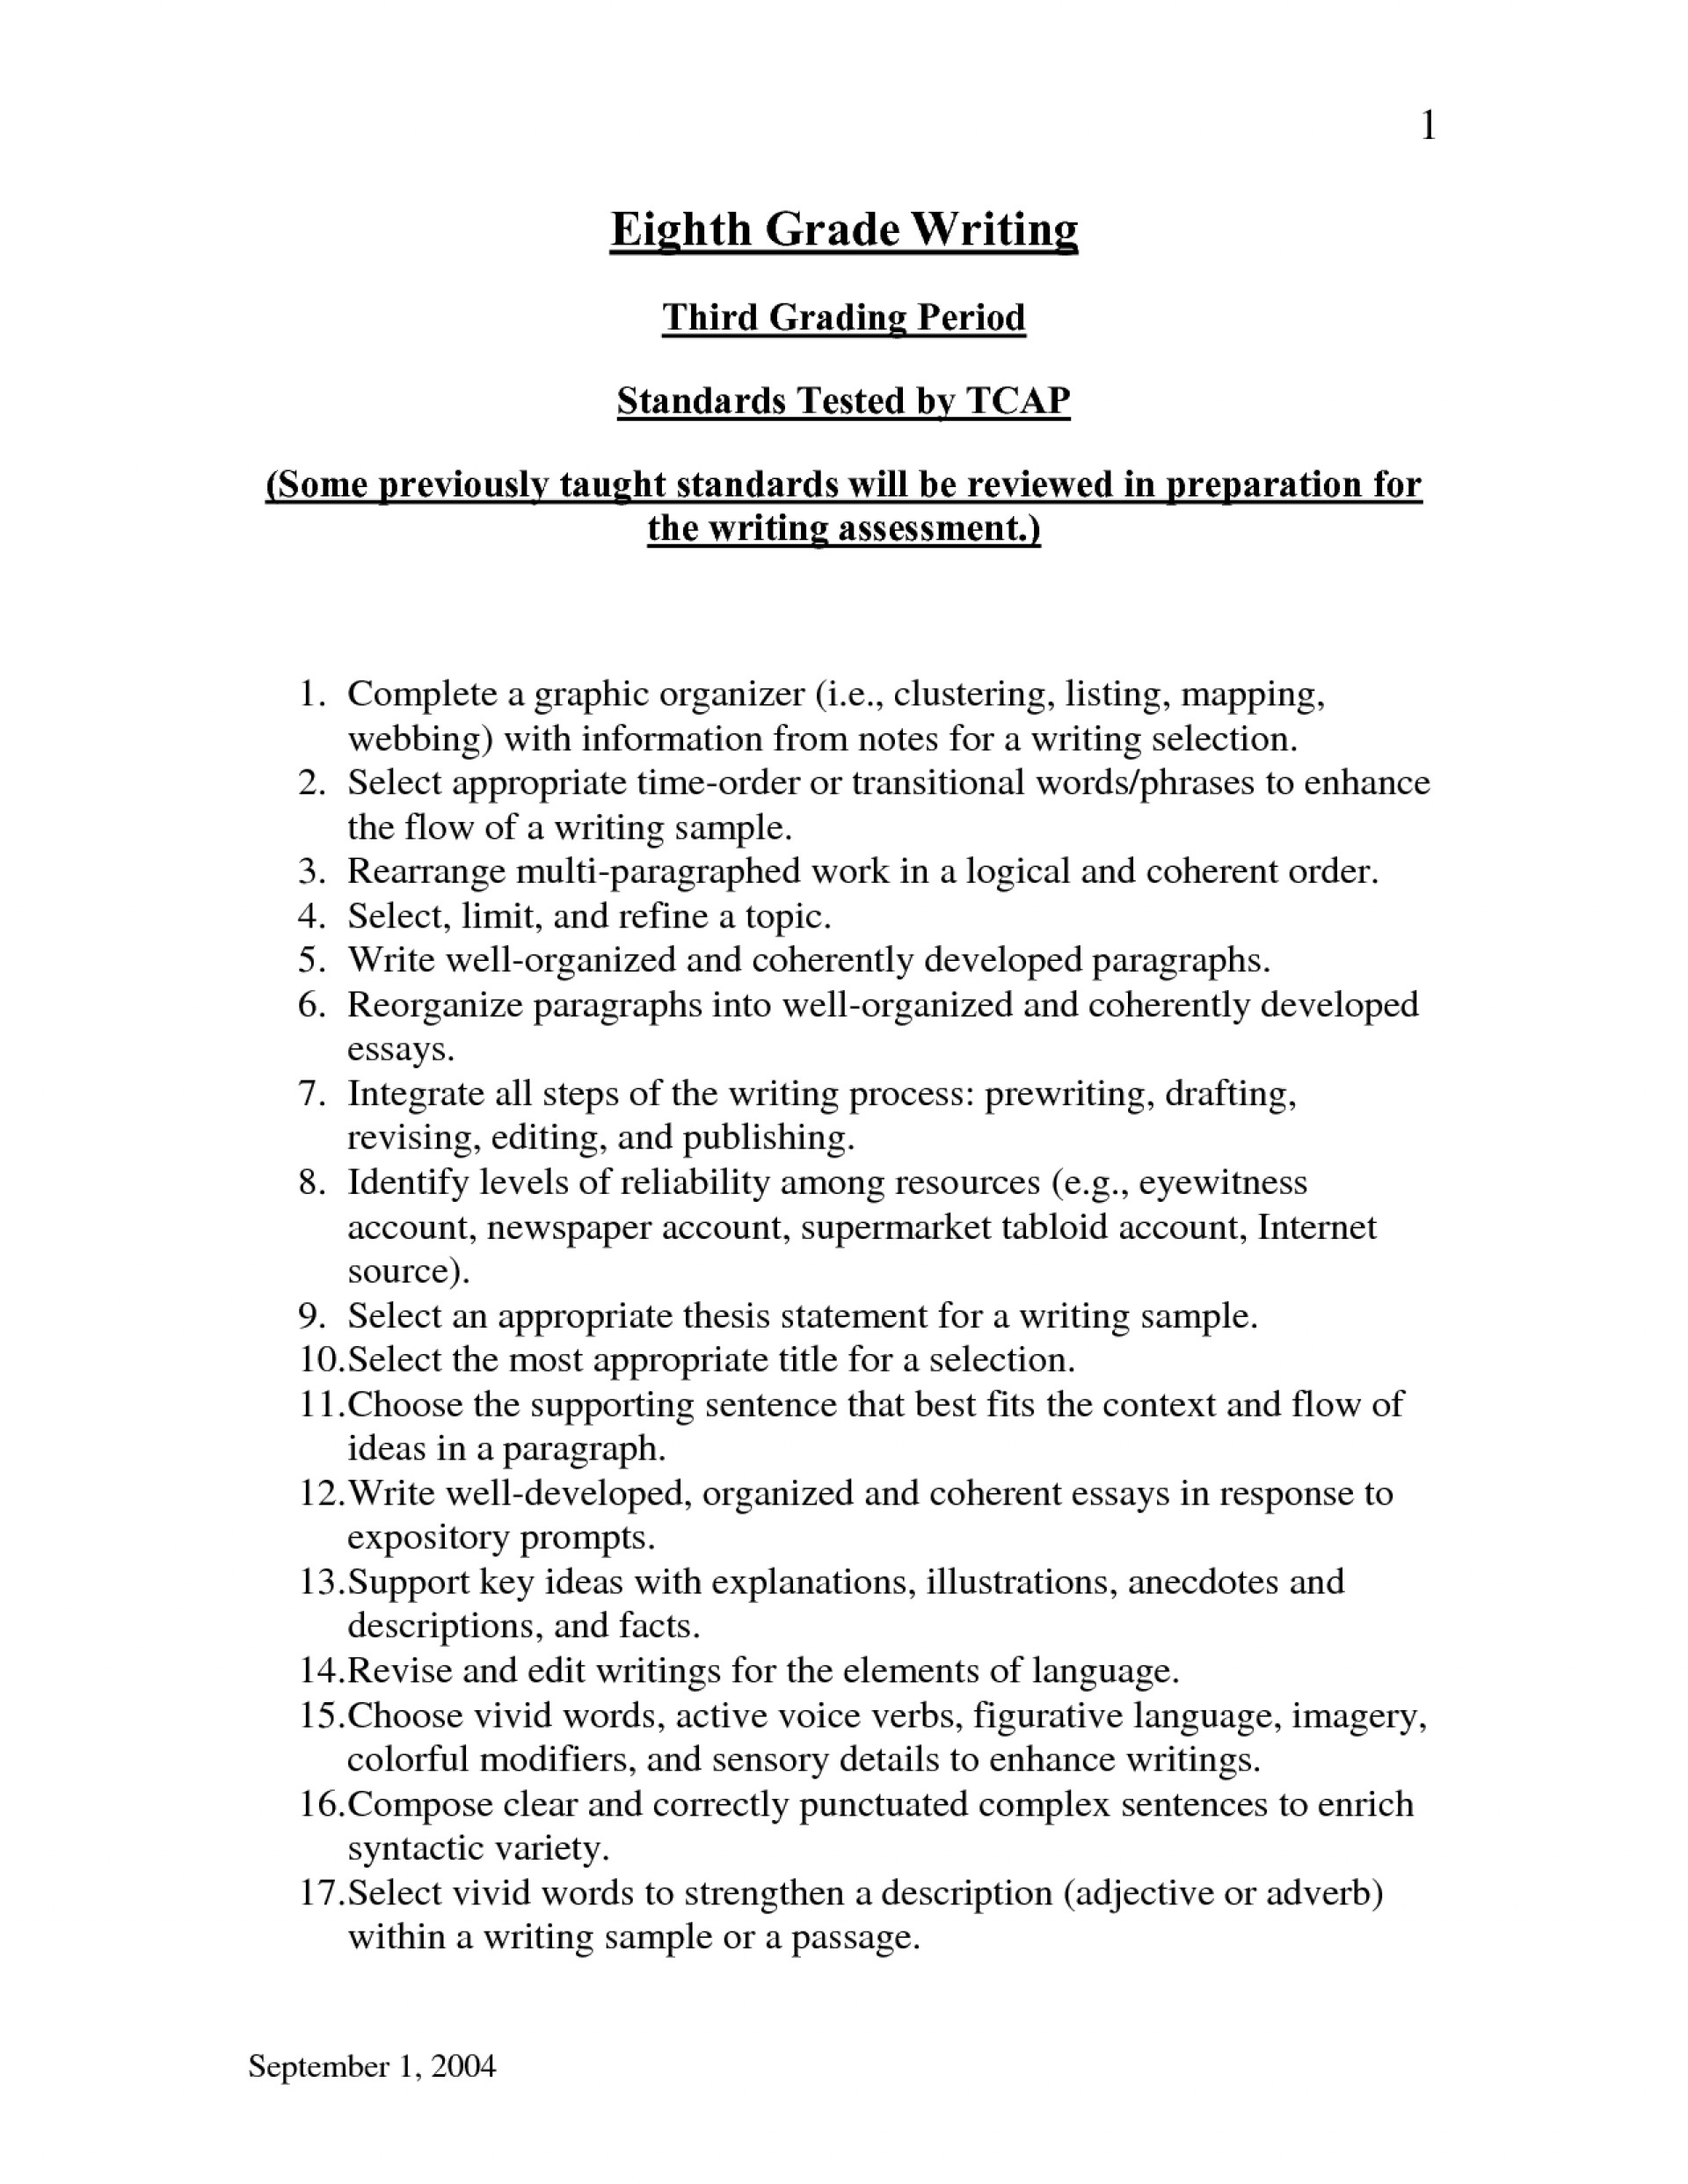 008 Expository Essays 1341145155 Essay Help Stunning Just The Facts Topics Rubric 4th Grade 1920